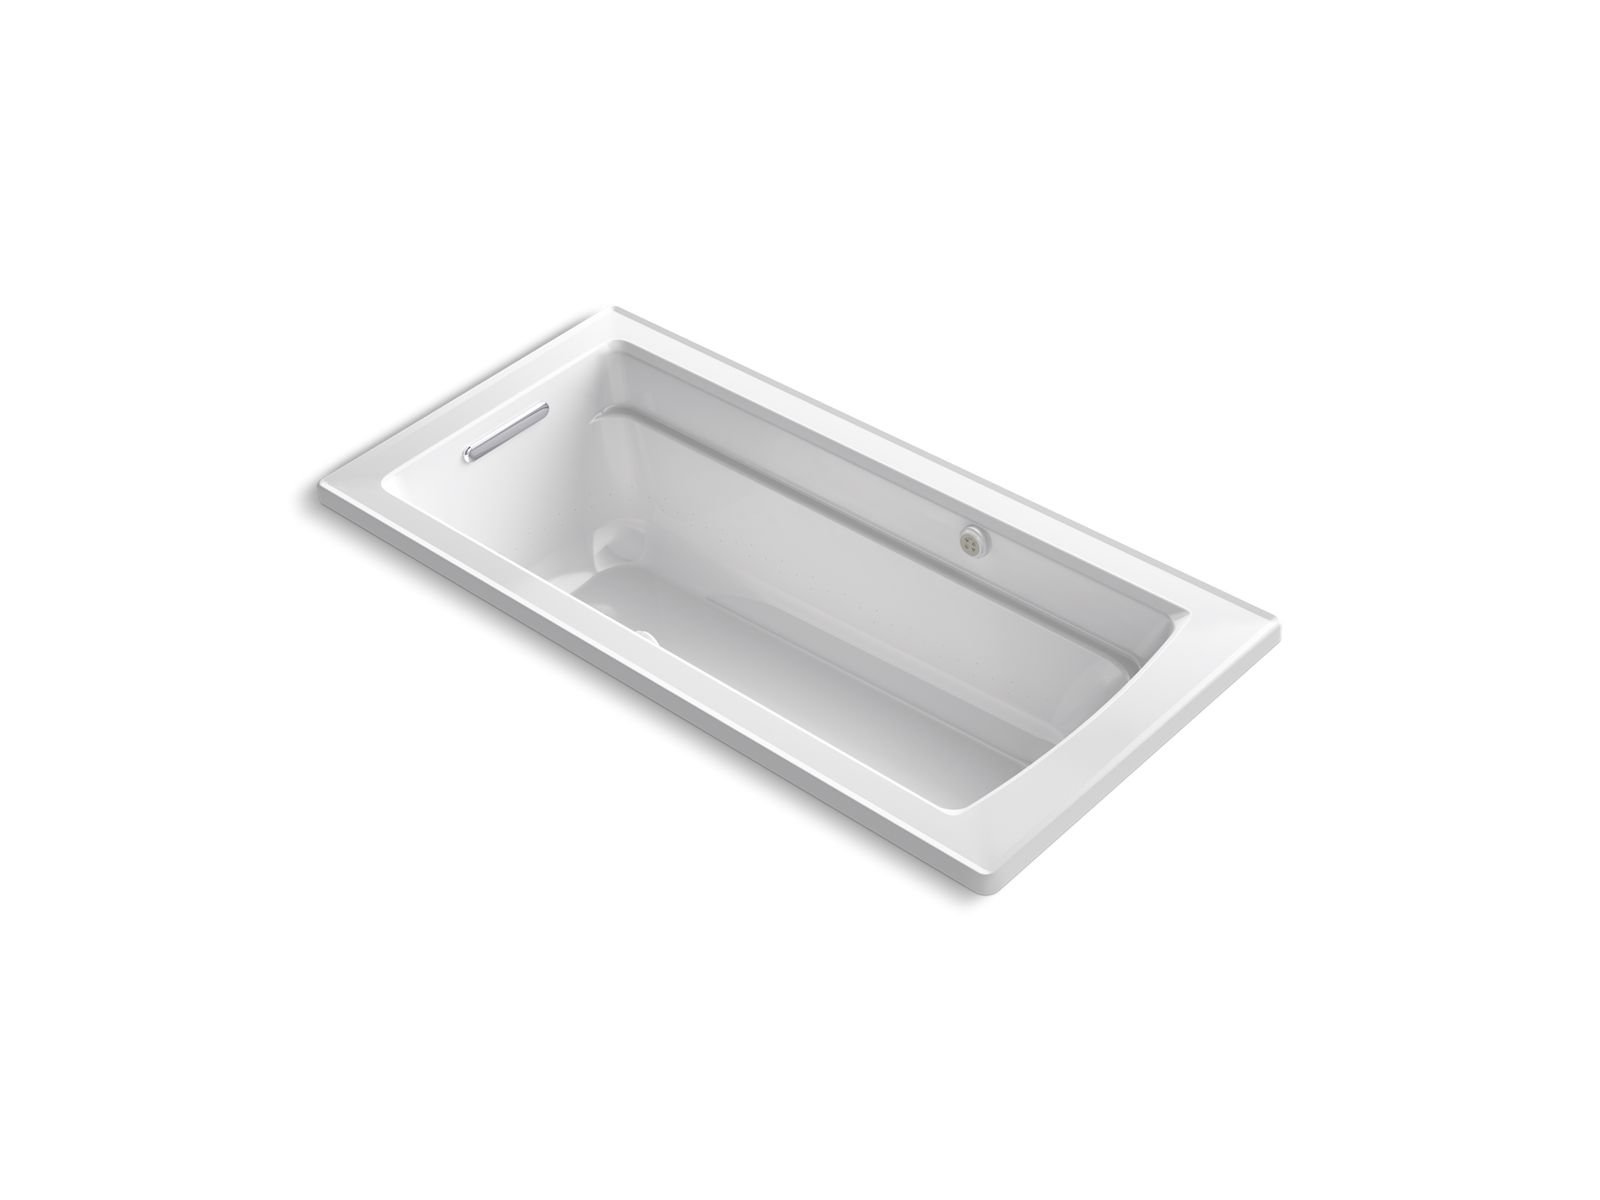 Kohler K-1949-GW-0 Archer 66 x 32 Drop-in Bubblemassage Air Bath with Bask Heated Surface and Reversible Drain in White